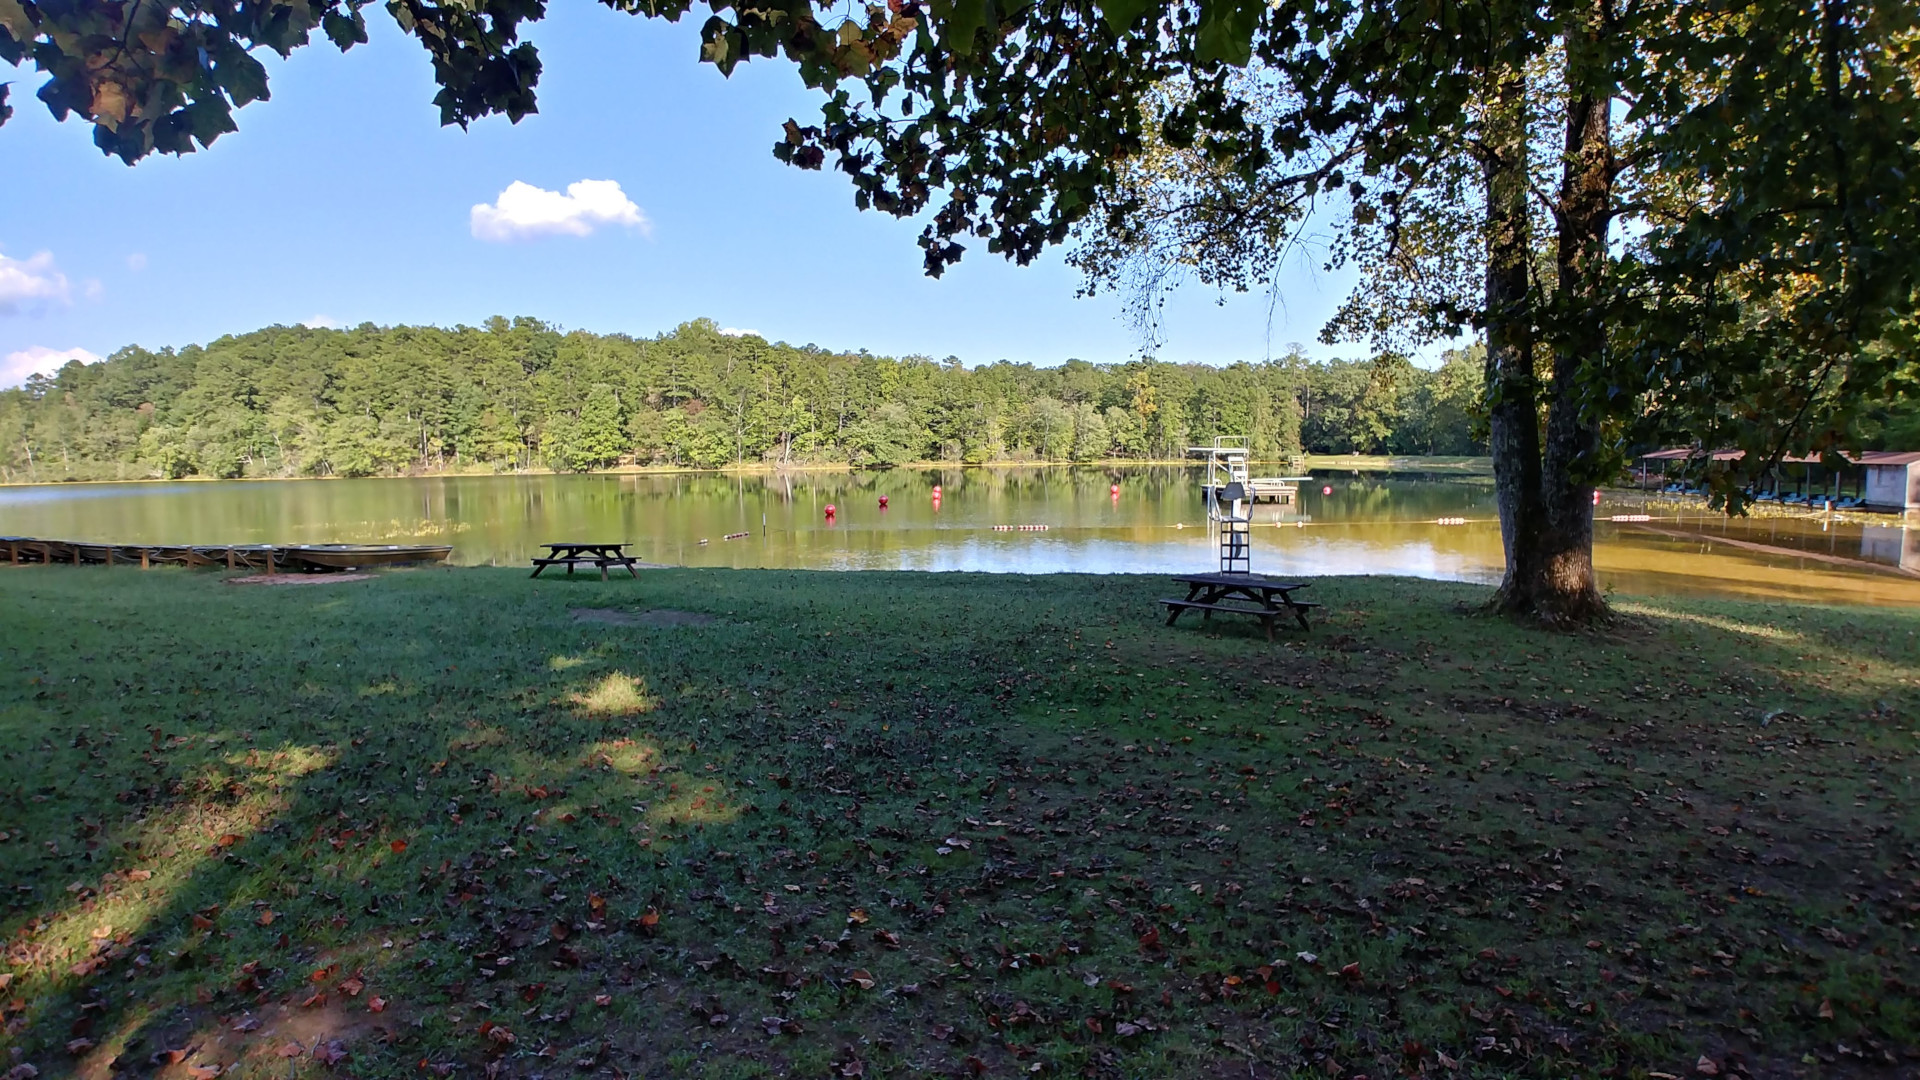 Oconee park provides quite a comfort summer camping experience in South Carolina